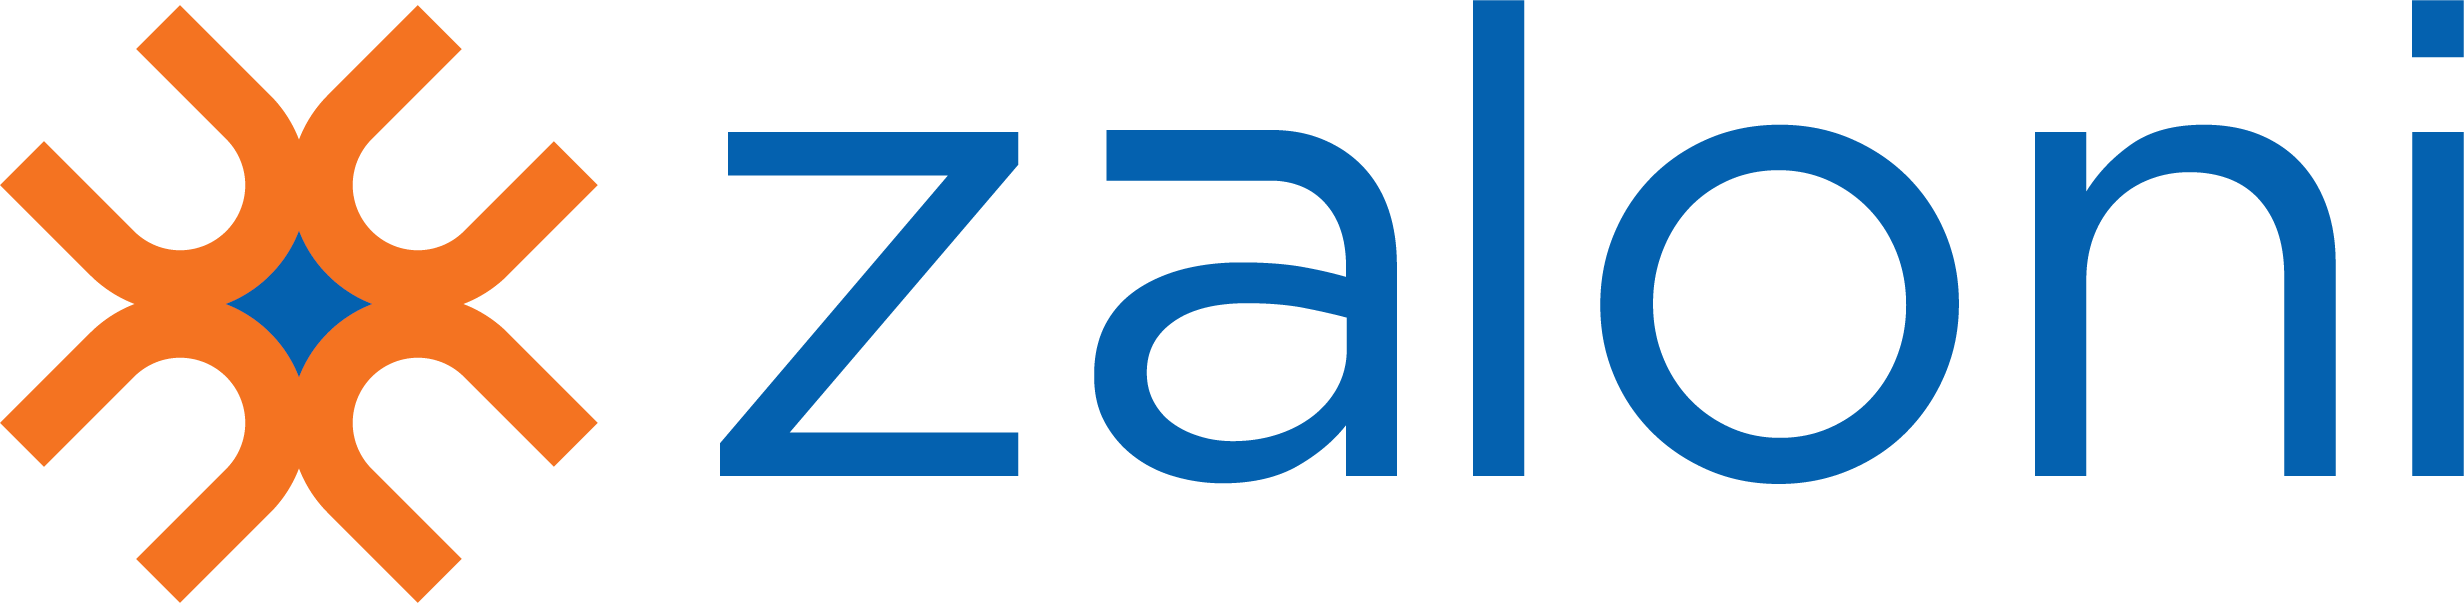 Zaloni's product, formerly known as the Zaloni Data Platform (ZDP), has been renamed Arena